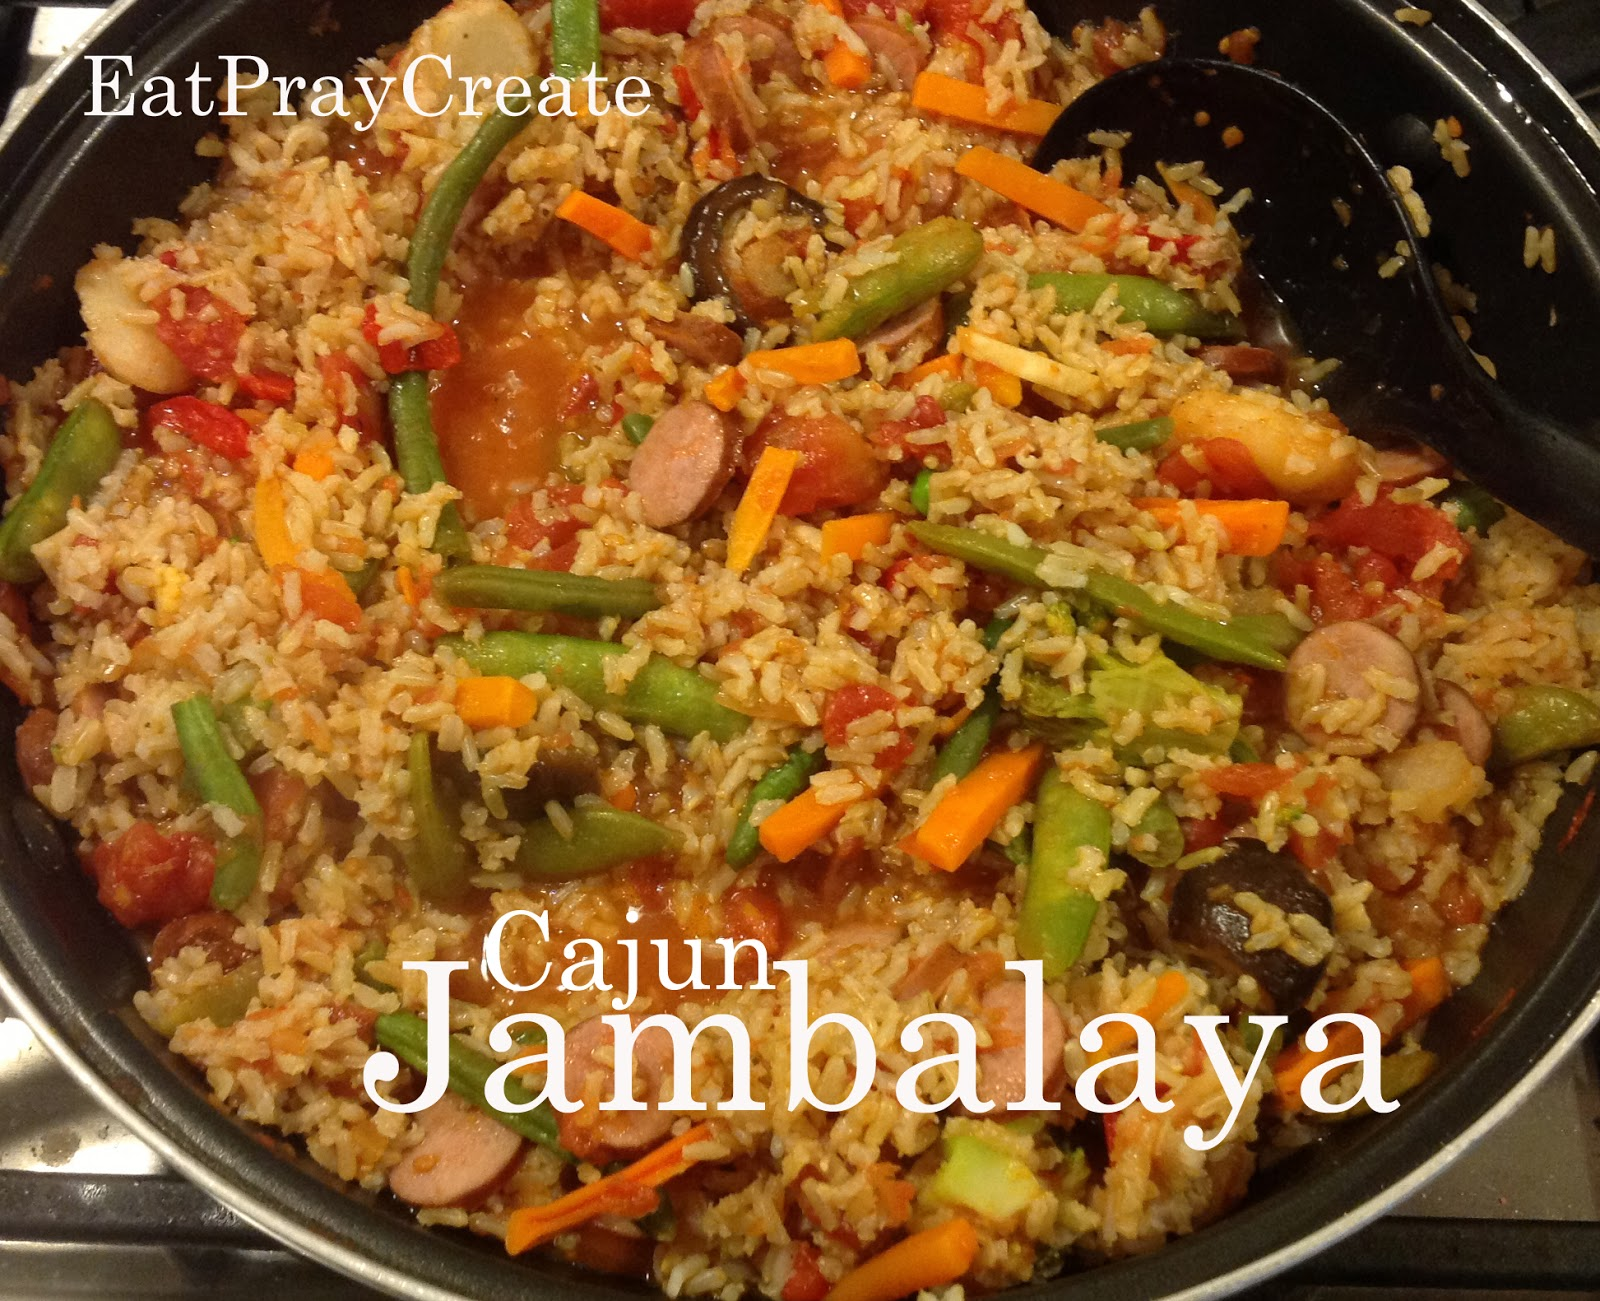 Cajun Jambalaya Recipe - Quick and Easy Dinner - Eat Pray Create